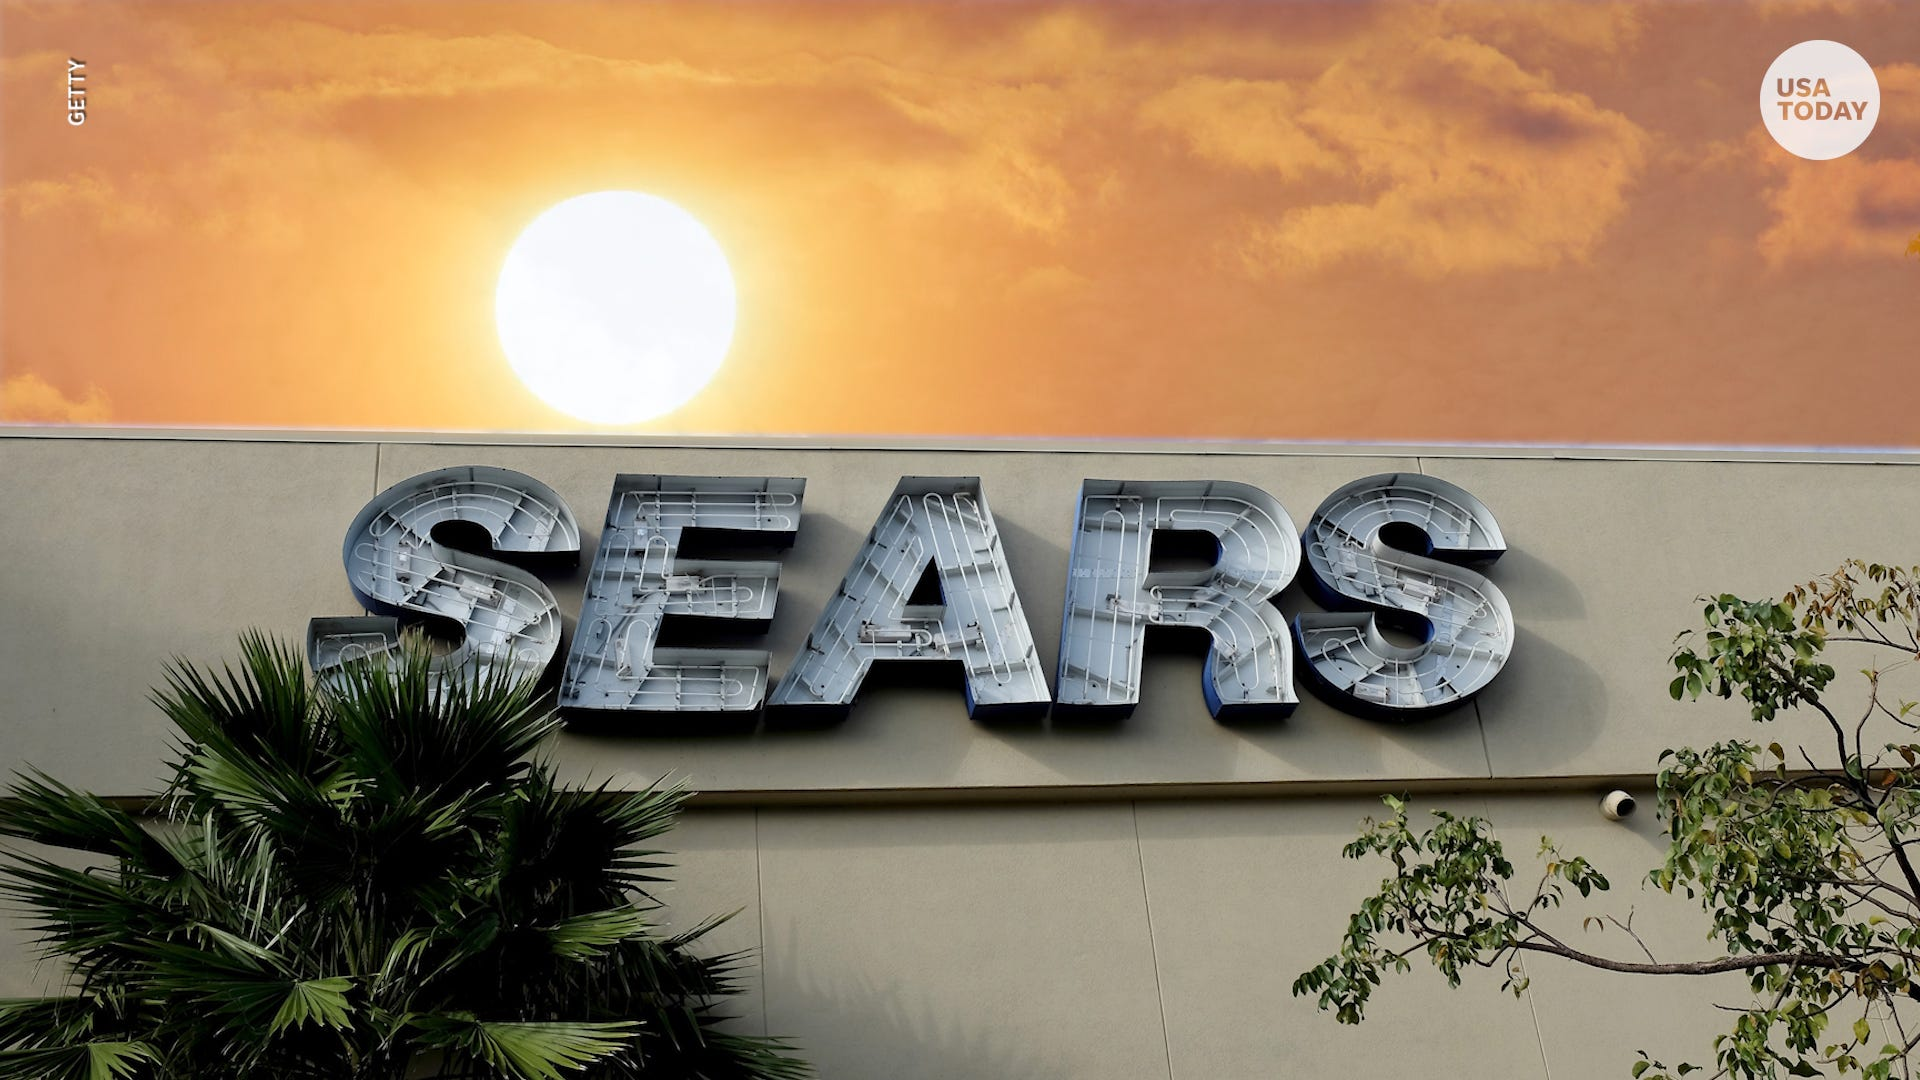 Why seeing Sears stores close hurts hearts